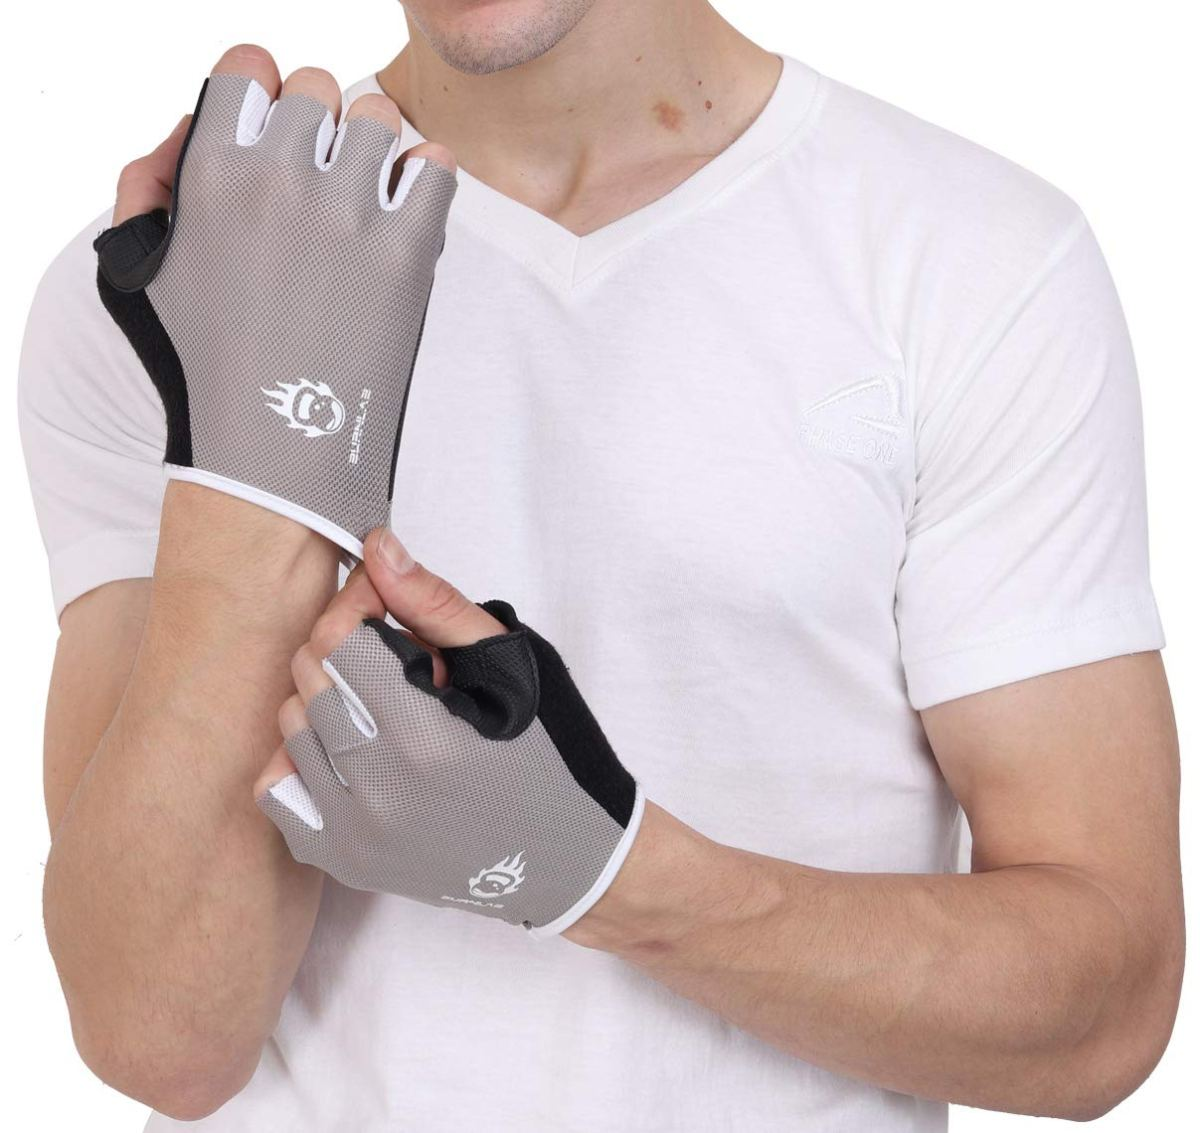 Burnlab Gym Gloves for Men and Women, Full Palm Protection & Grip. Great for Weightlifting, Pull ups and Cross Training